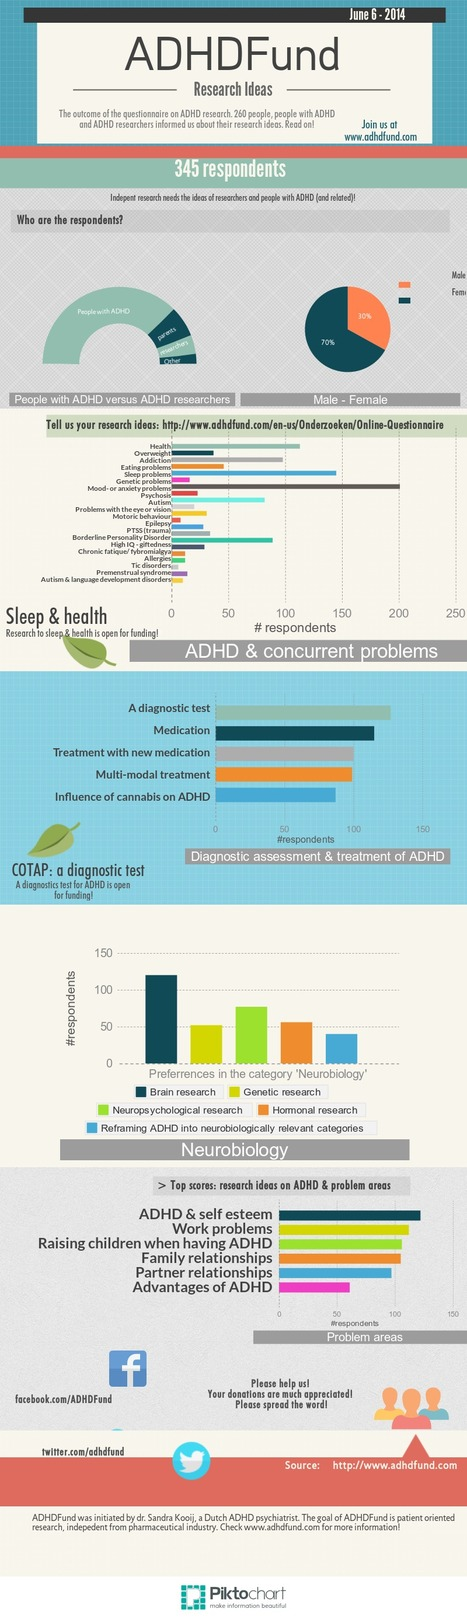 ADHDFund: Your research ideas #infographic - update june 6th, 2014 | Health Trends and Advancements | Scoop.it